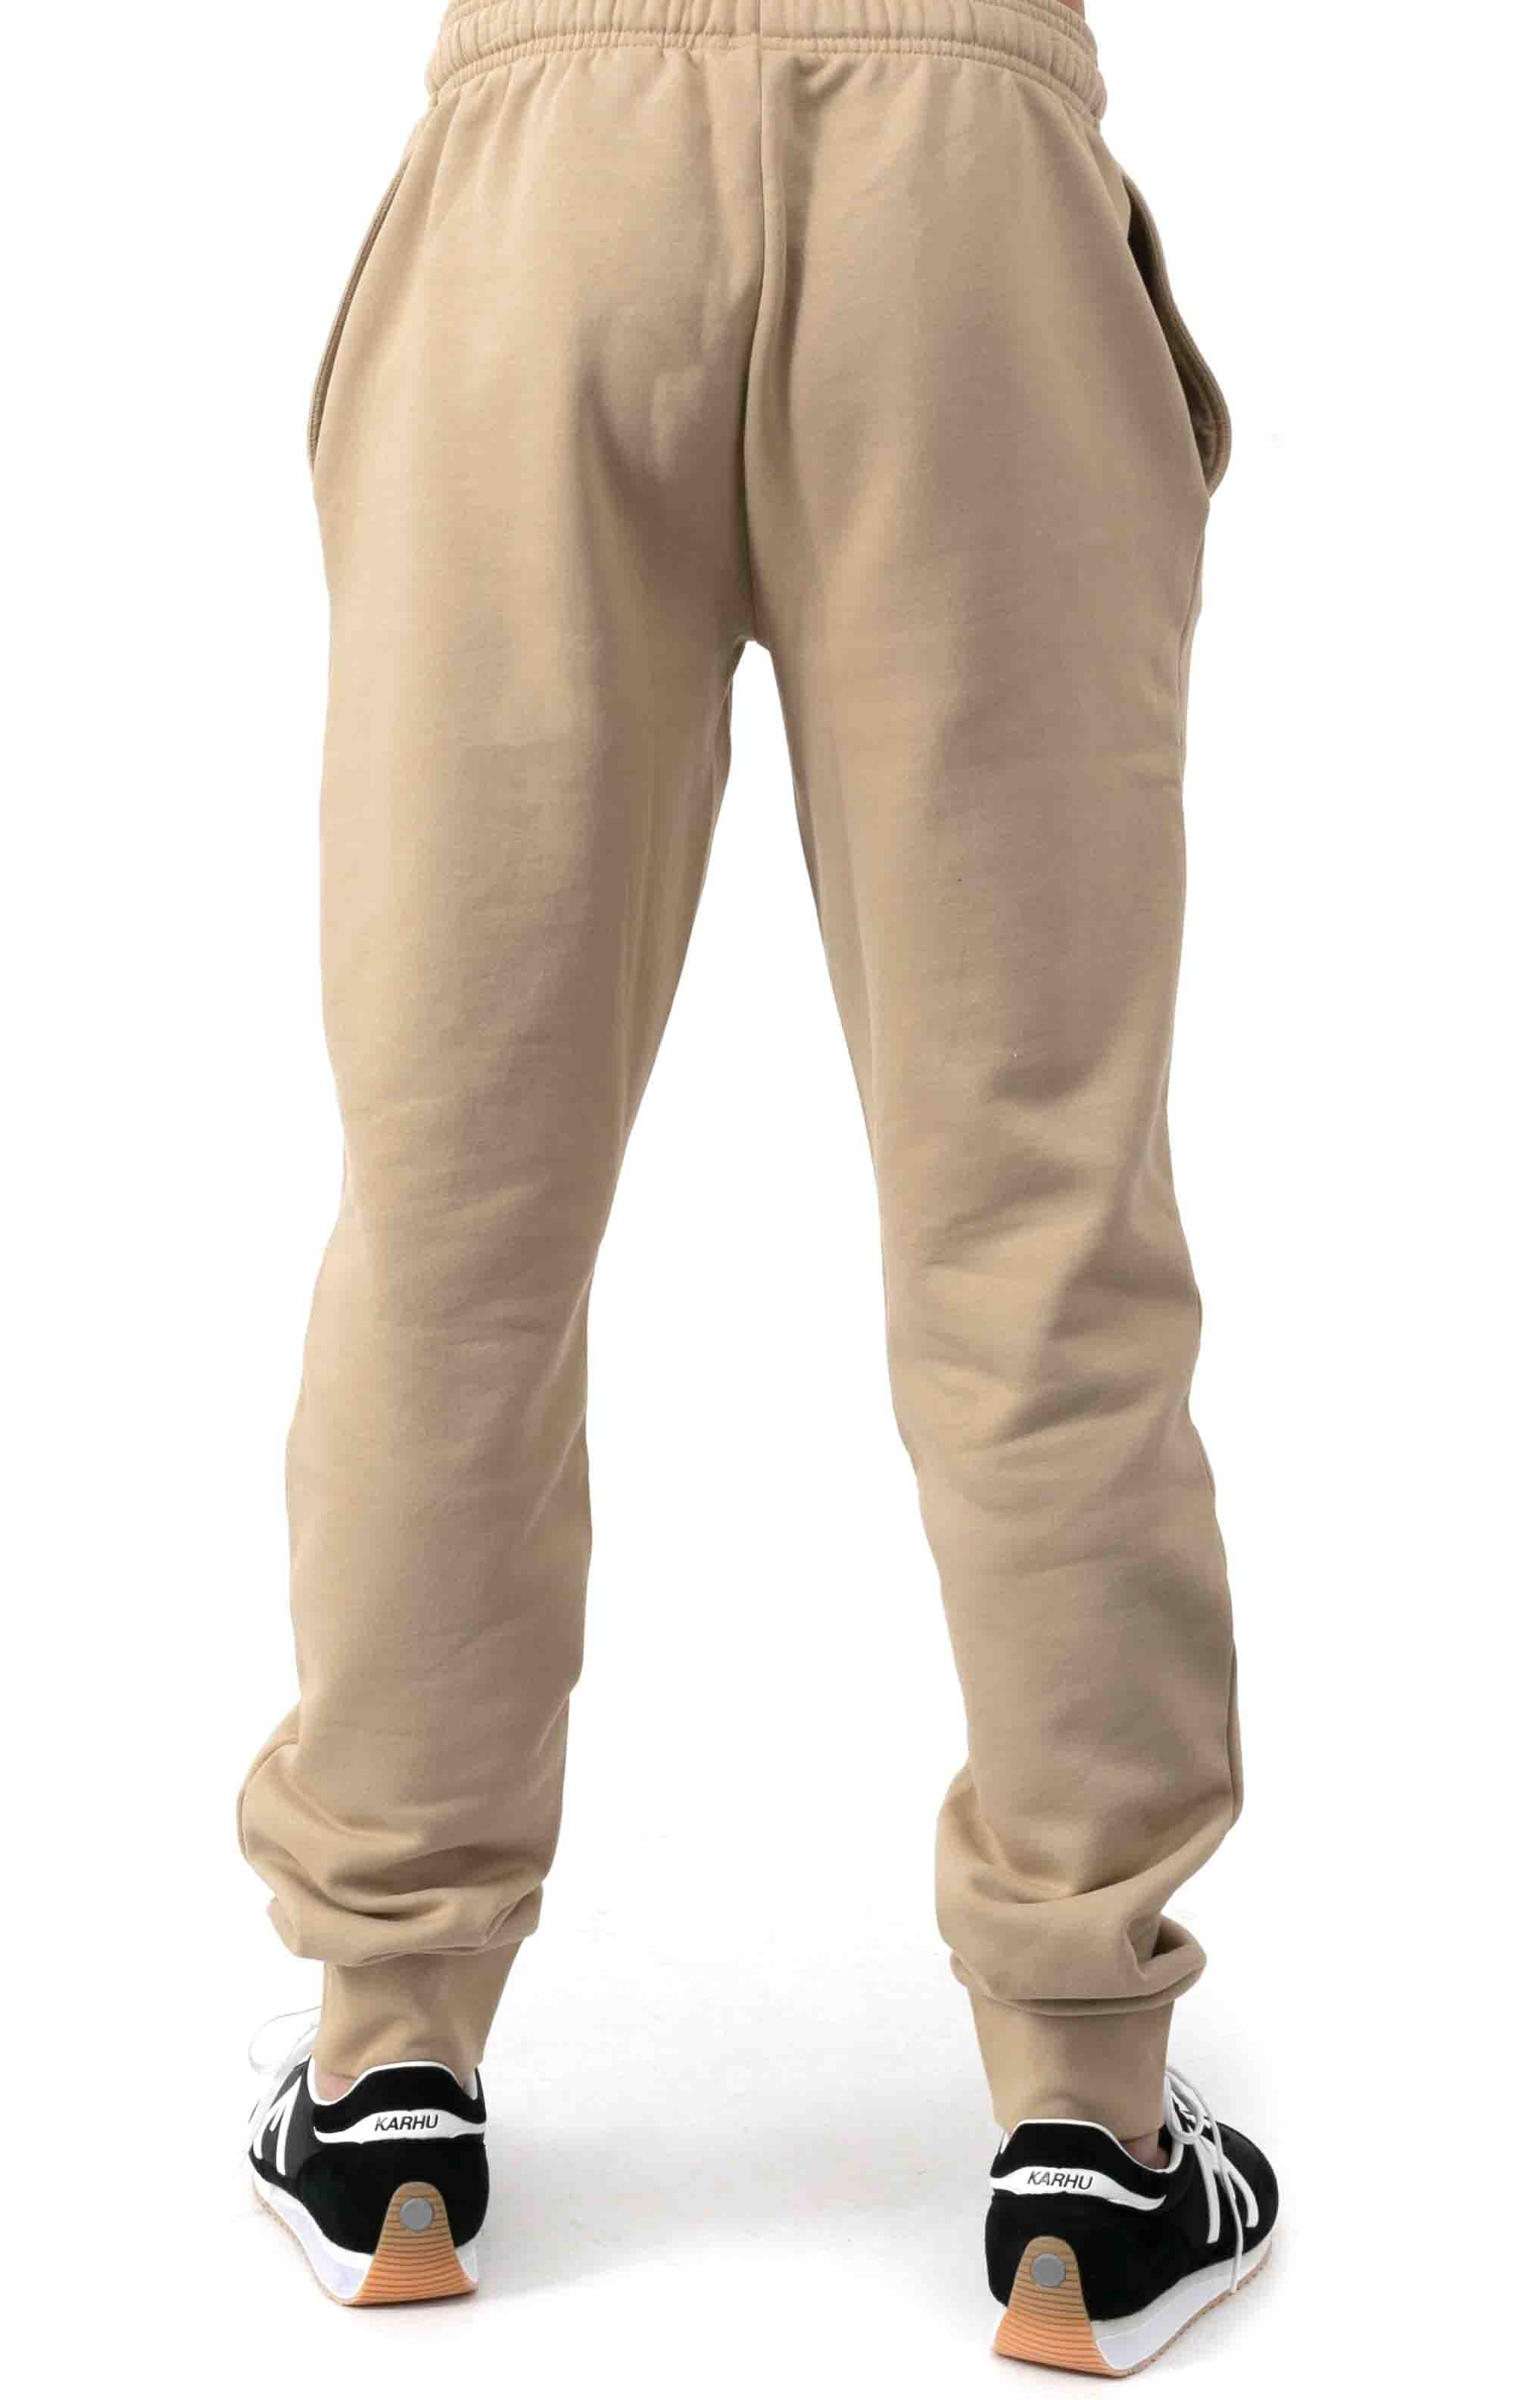 SPORT Fleece Jogging Pants - Beige  3